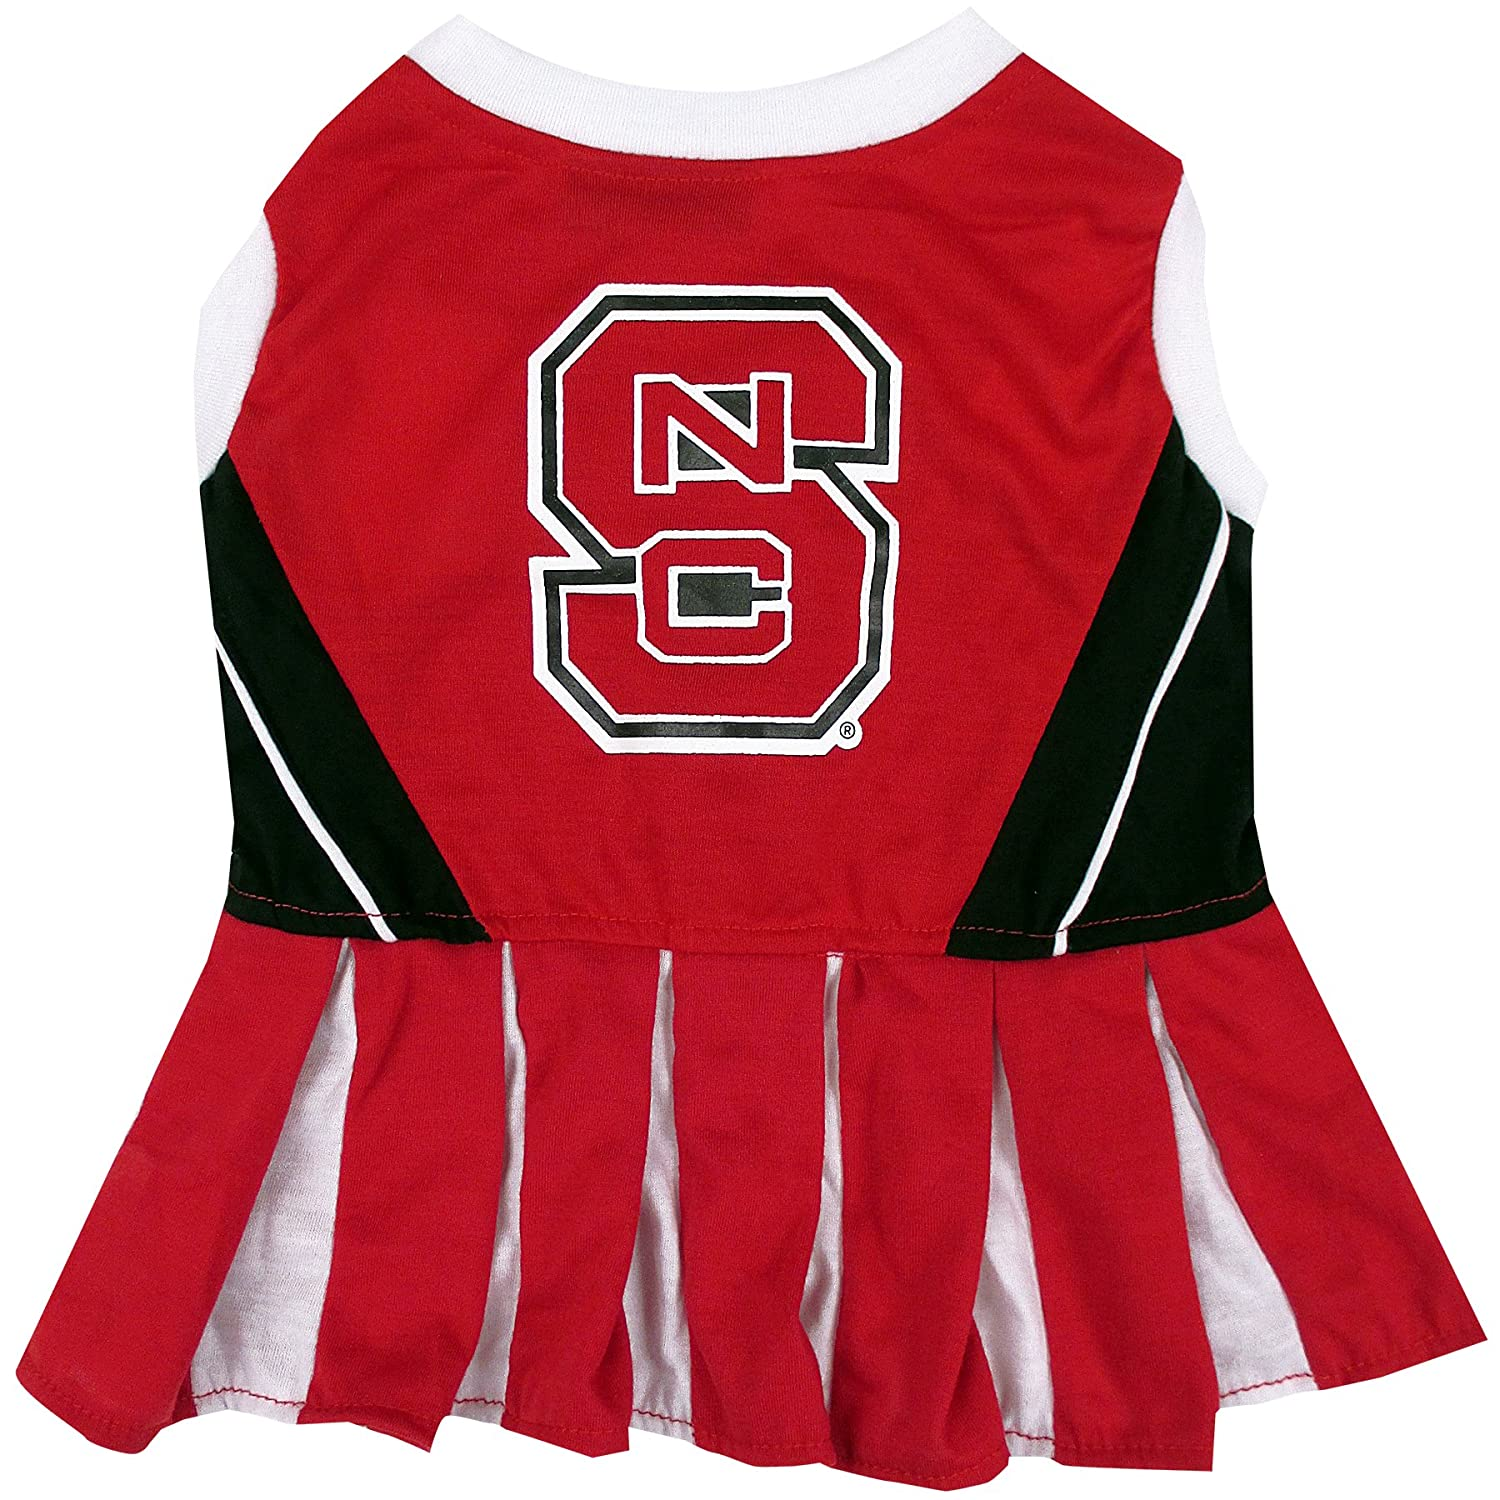 Small NCAA NORTH CAROLINA STATE WOLFPACK DOG Cheerleader Outfit, Small